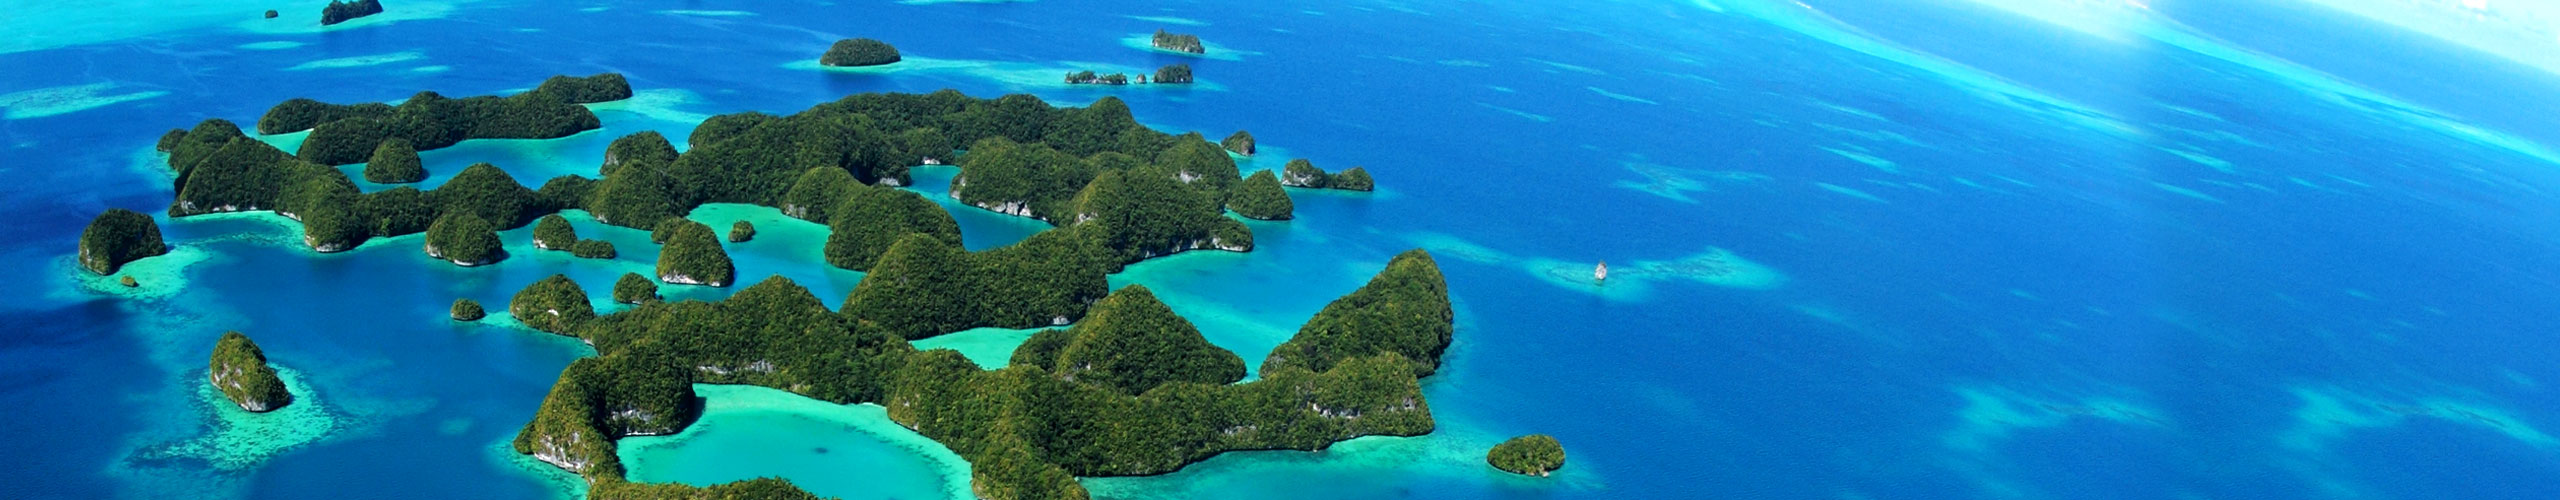 island-conservation-palau-islands-campaign-2017